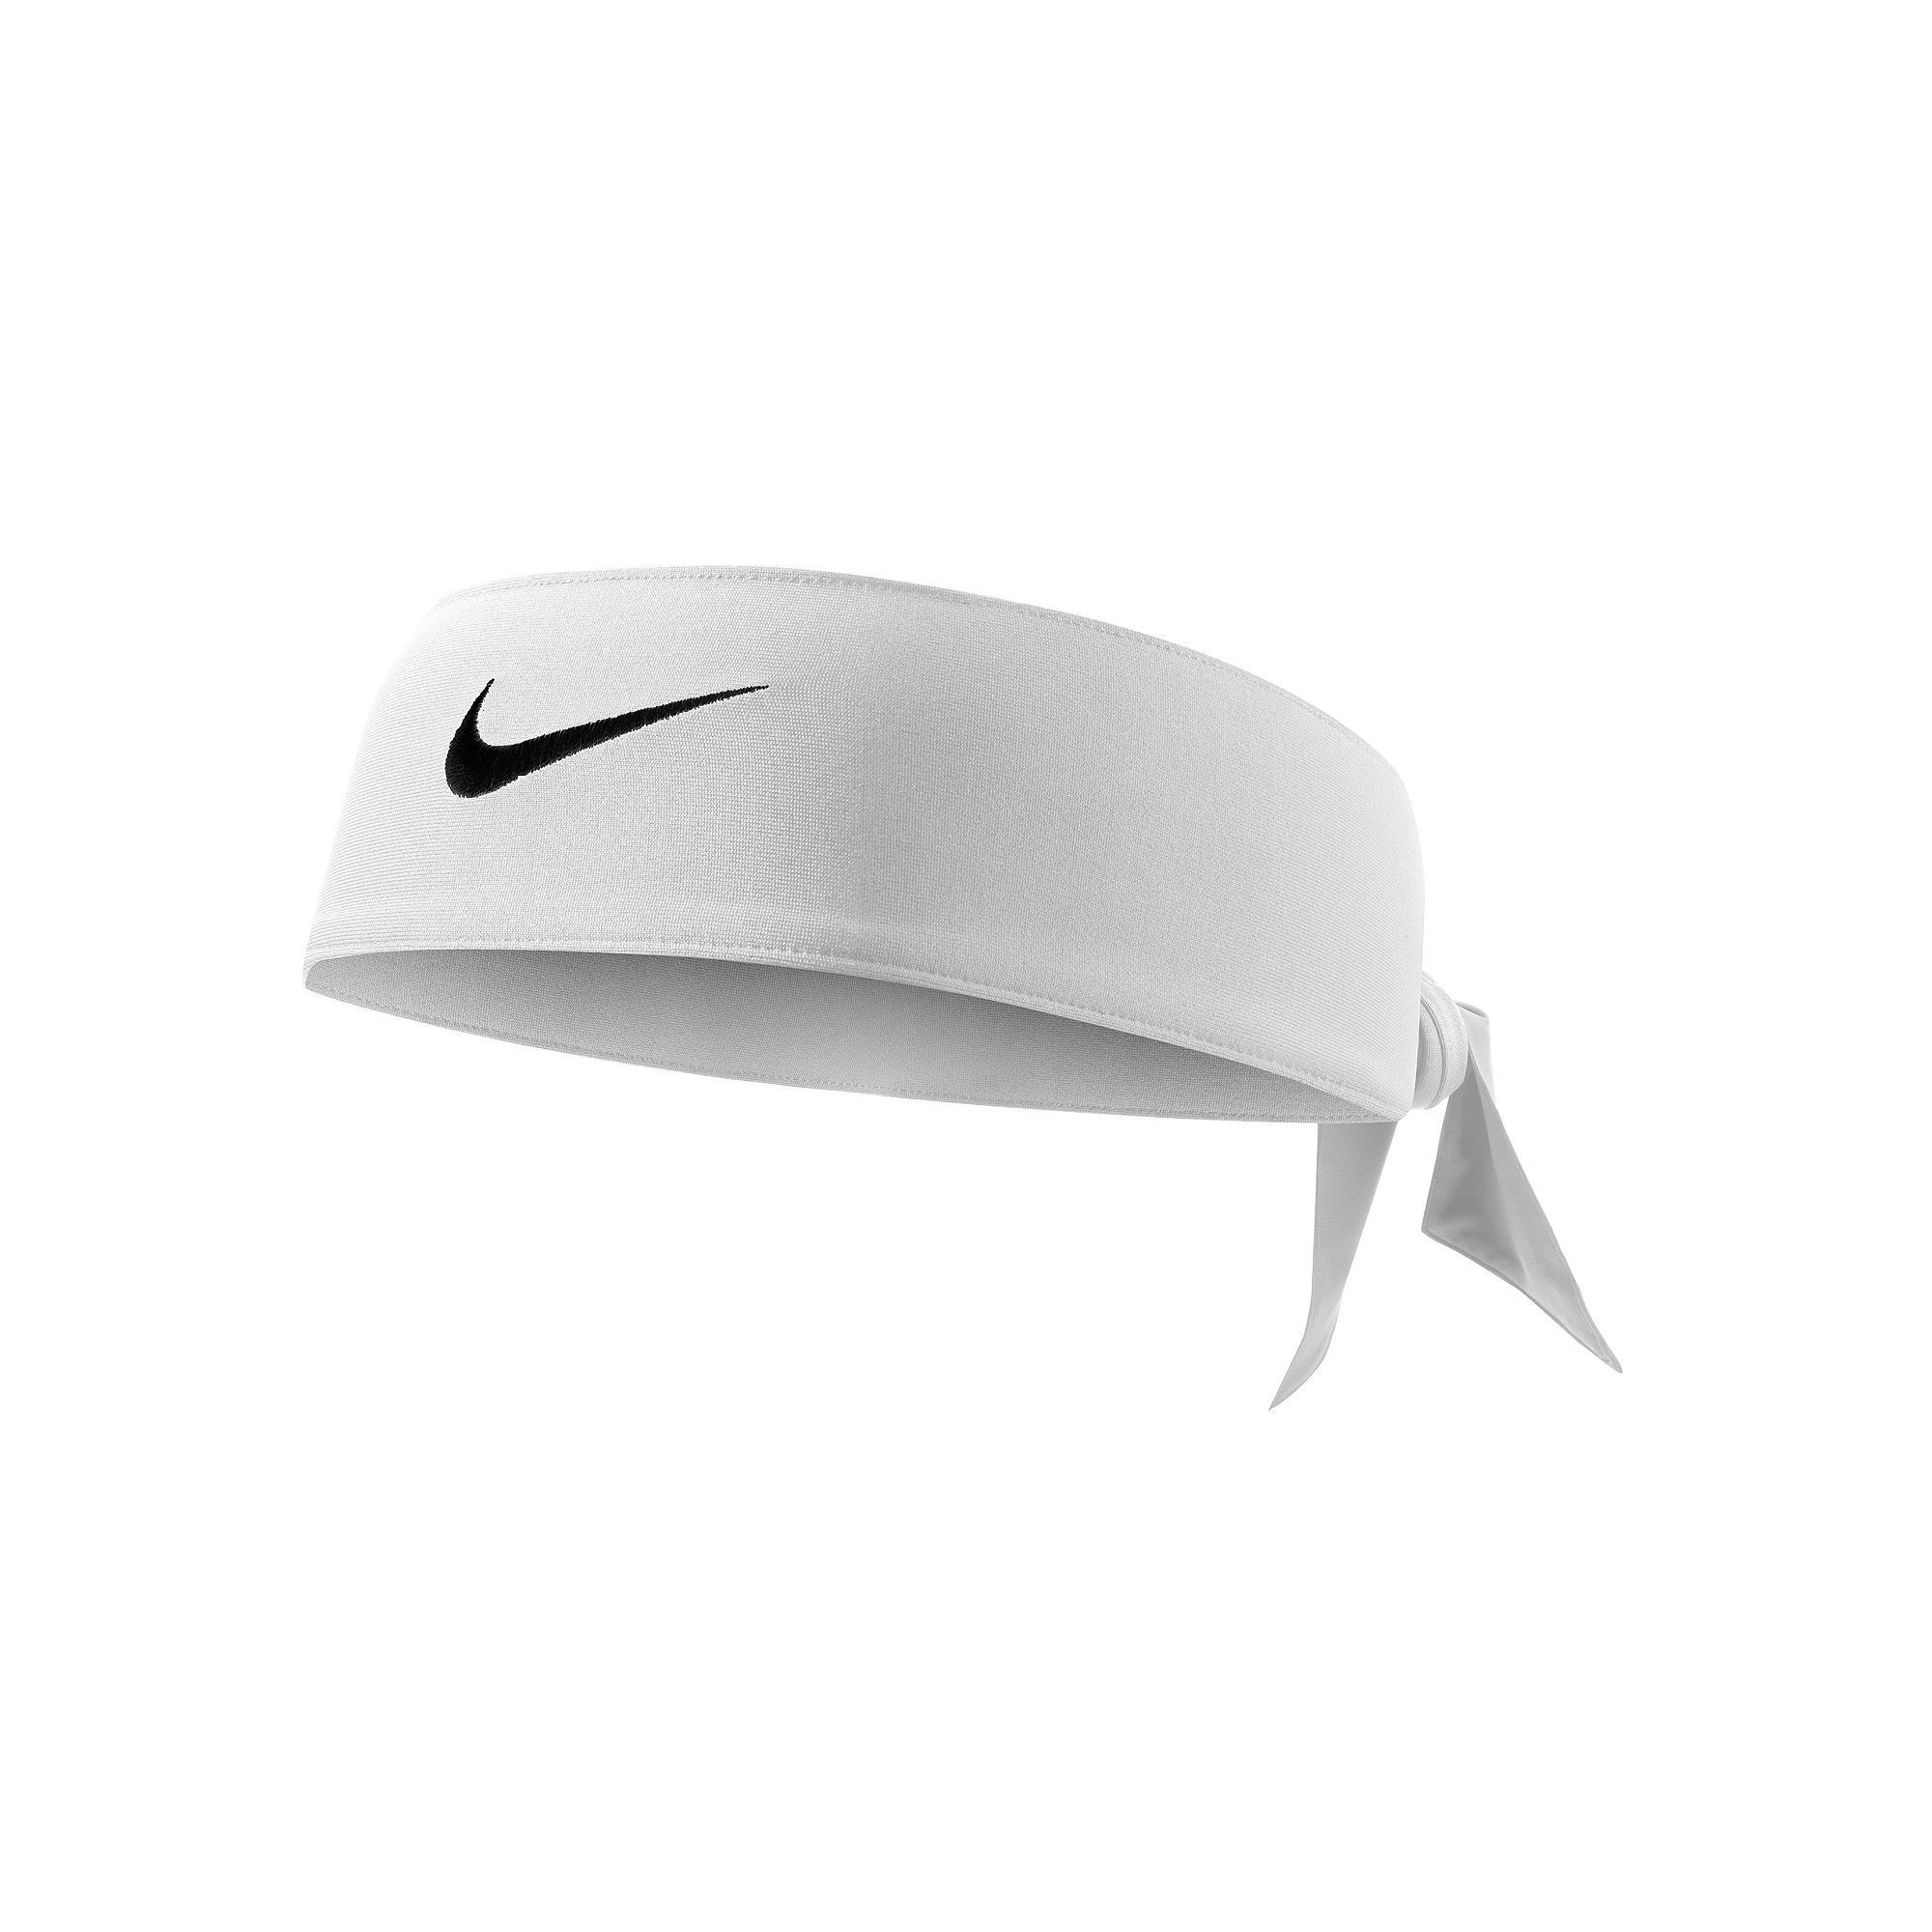 Nike Sport Tie Headwrap Nike Headbands Head Ties Nike Tie Headbands